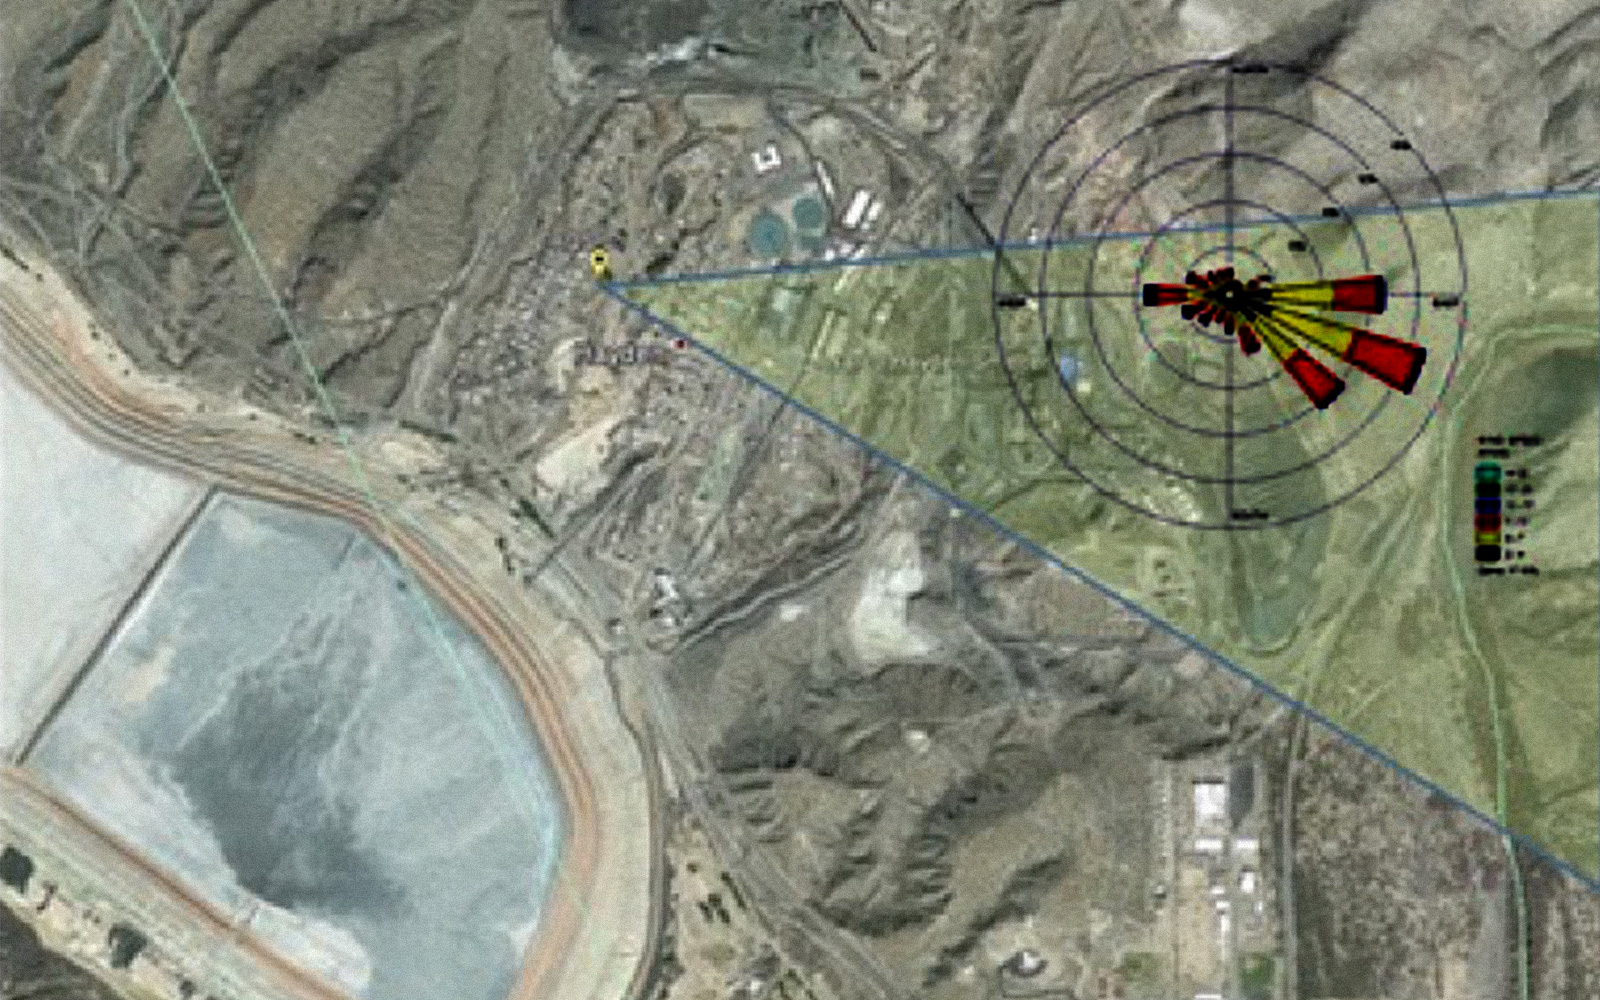 Example output of innovative risk-based method to identify facilities whose emissions may be exceeding permit limits. Output shows satellite view of an area overlaid with windrose showing pollution emissions from a point source.